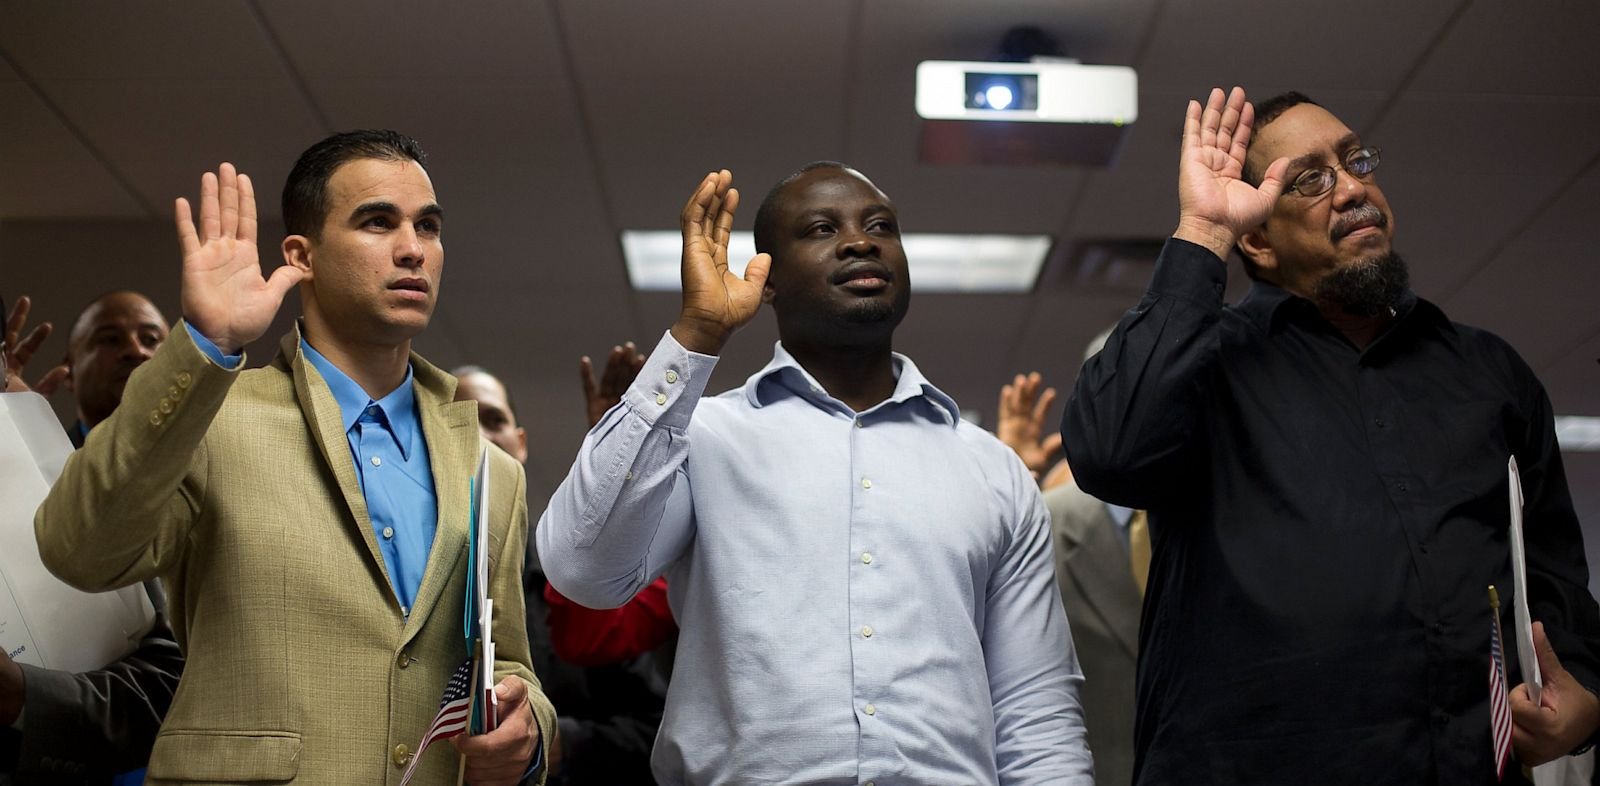 PHOTO: Newly naturalized American citizens take the Oath of Allegiance during a Naturalization Ceremony at the Jacob K. Javits Federal Building in New York, U.S., on Friday, April 19, 2013.